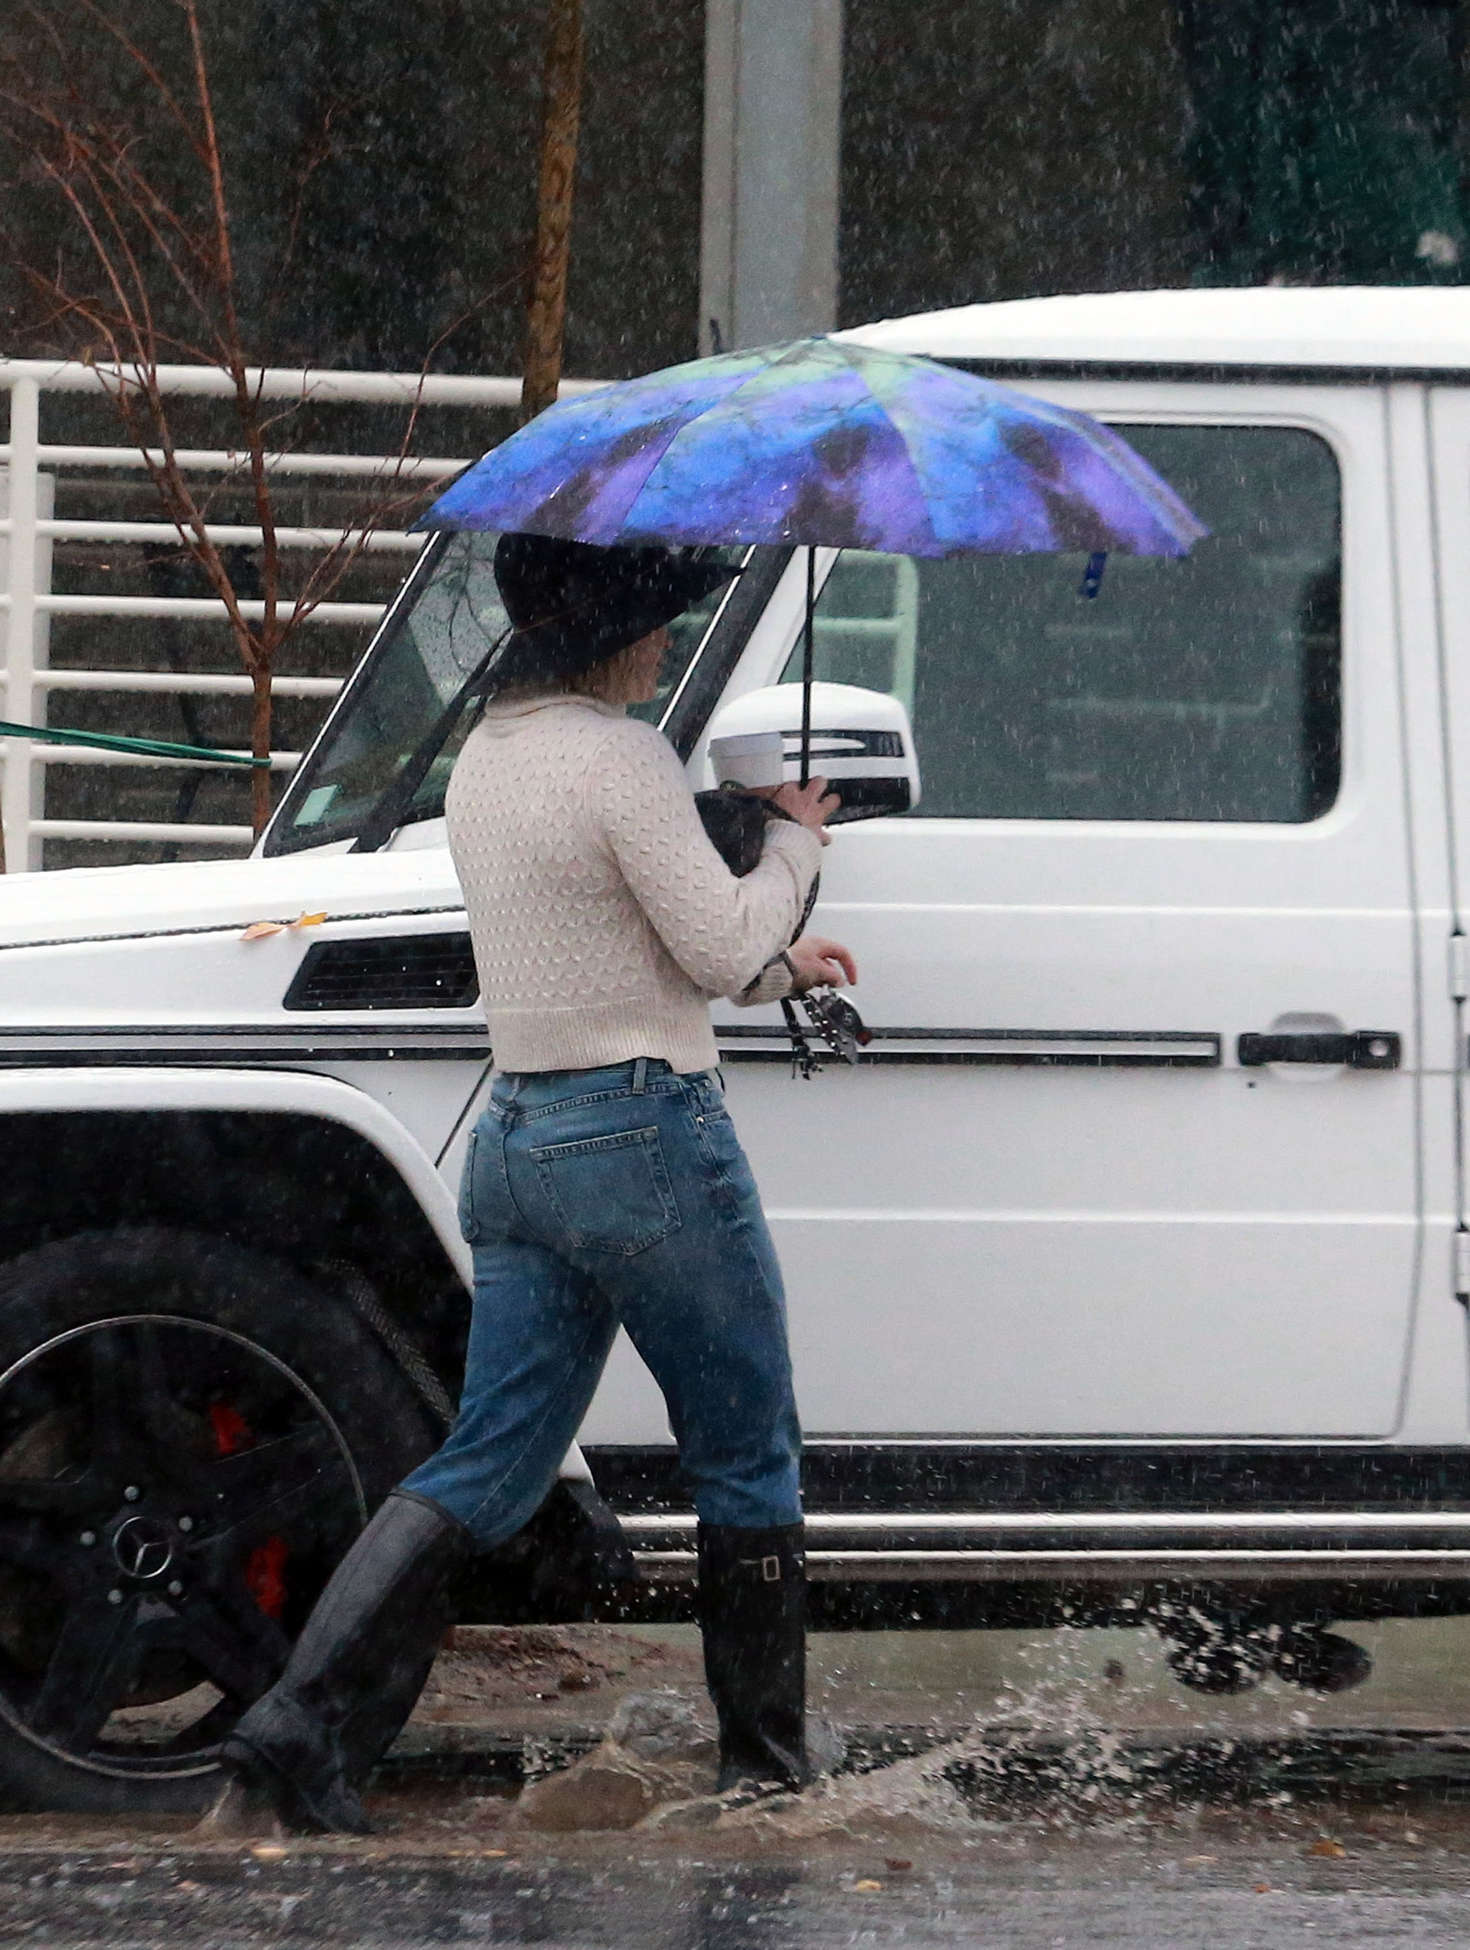 Hilary Duff 2016 : Hilary Duff in Jeans out on a rainy day -08